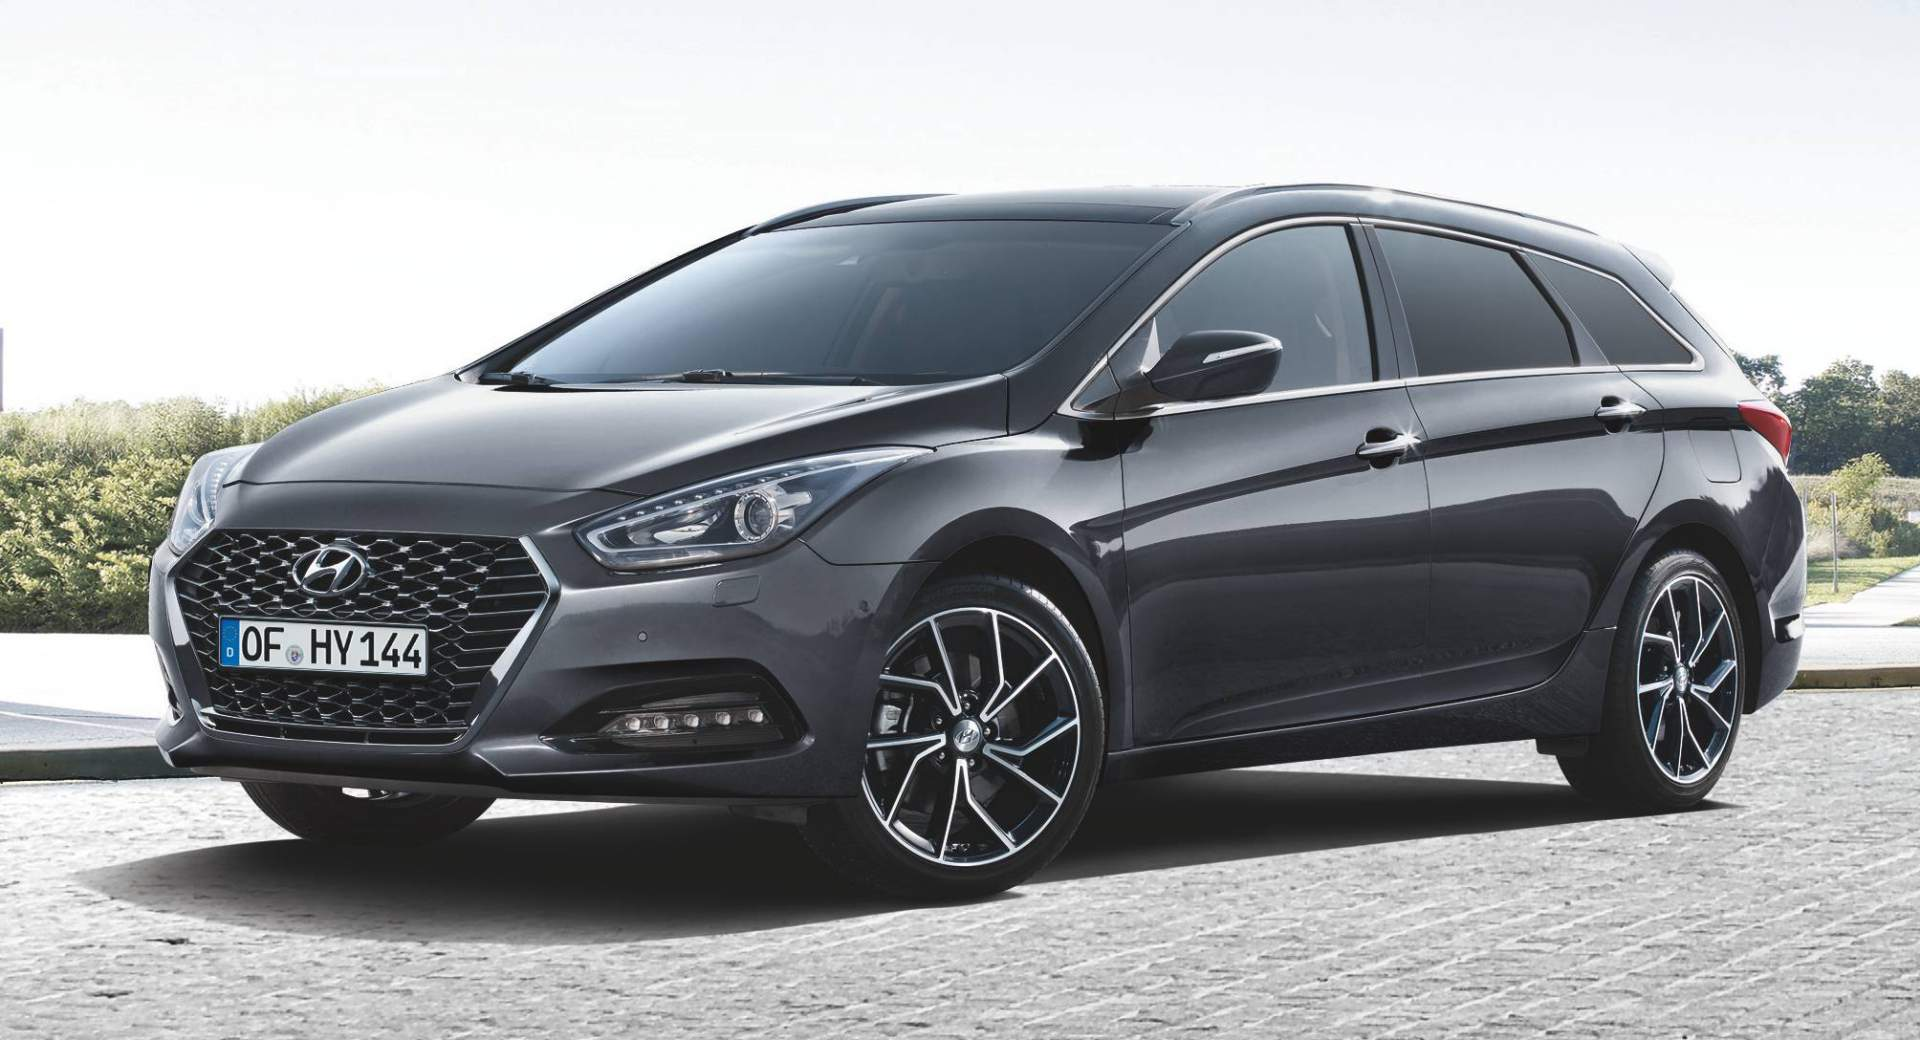 Hyundai Updates I40 Sedan And Wagon With New Grille